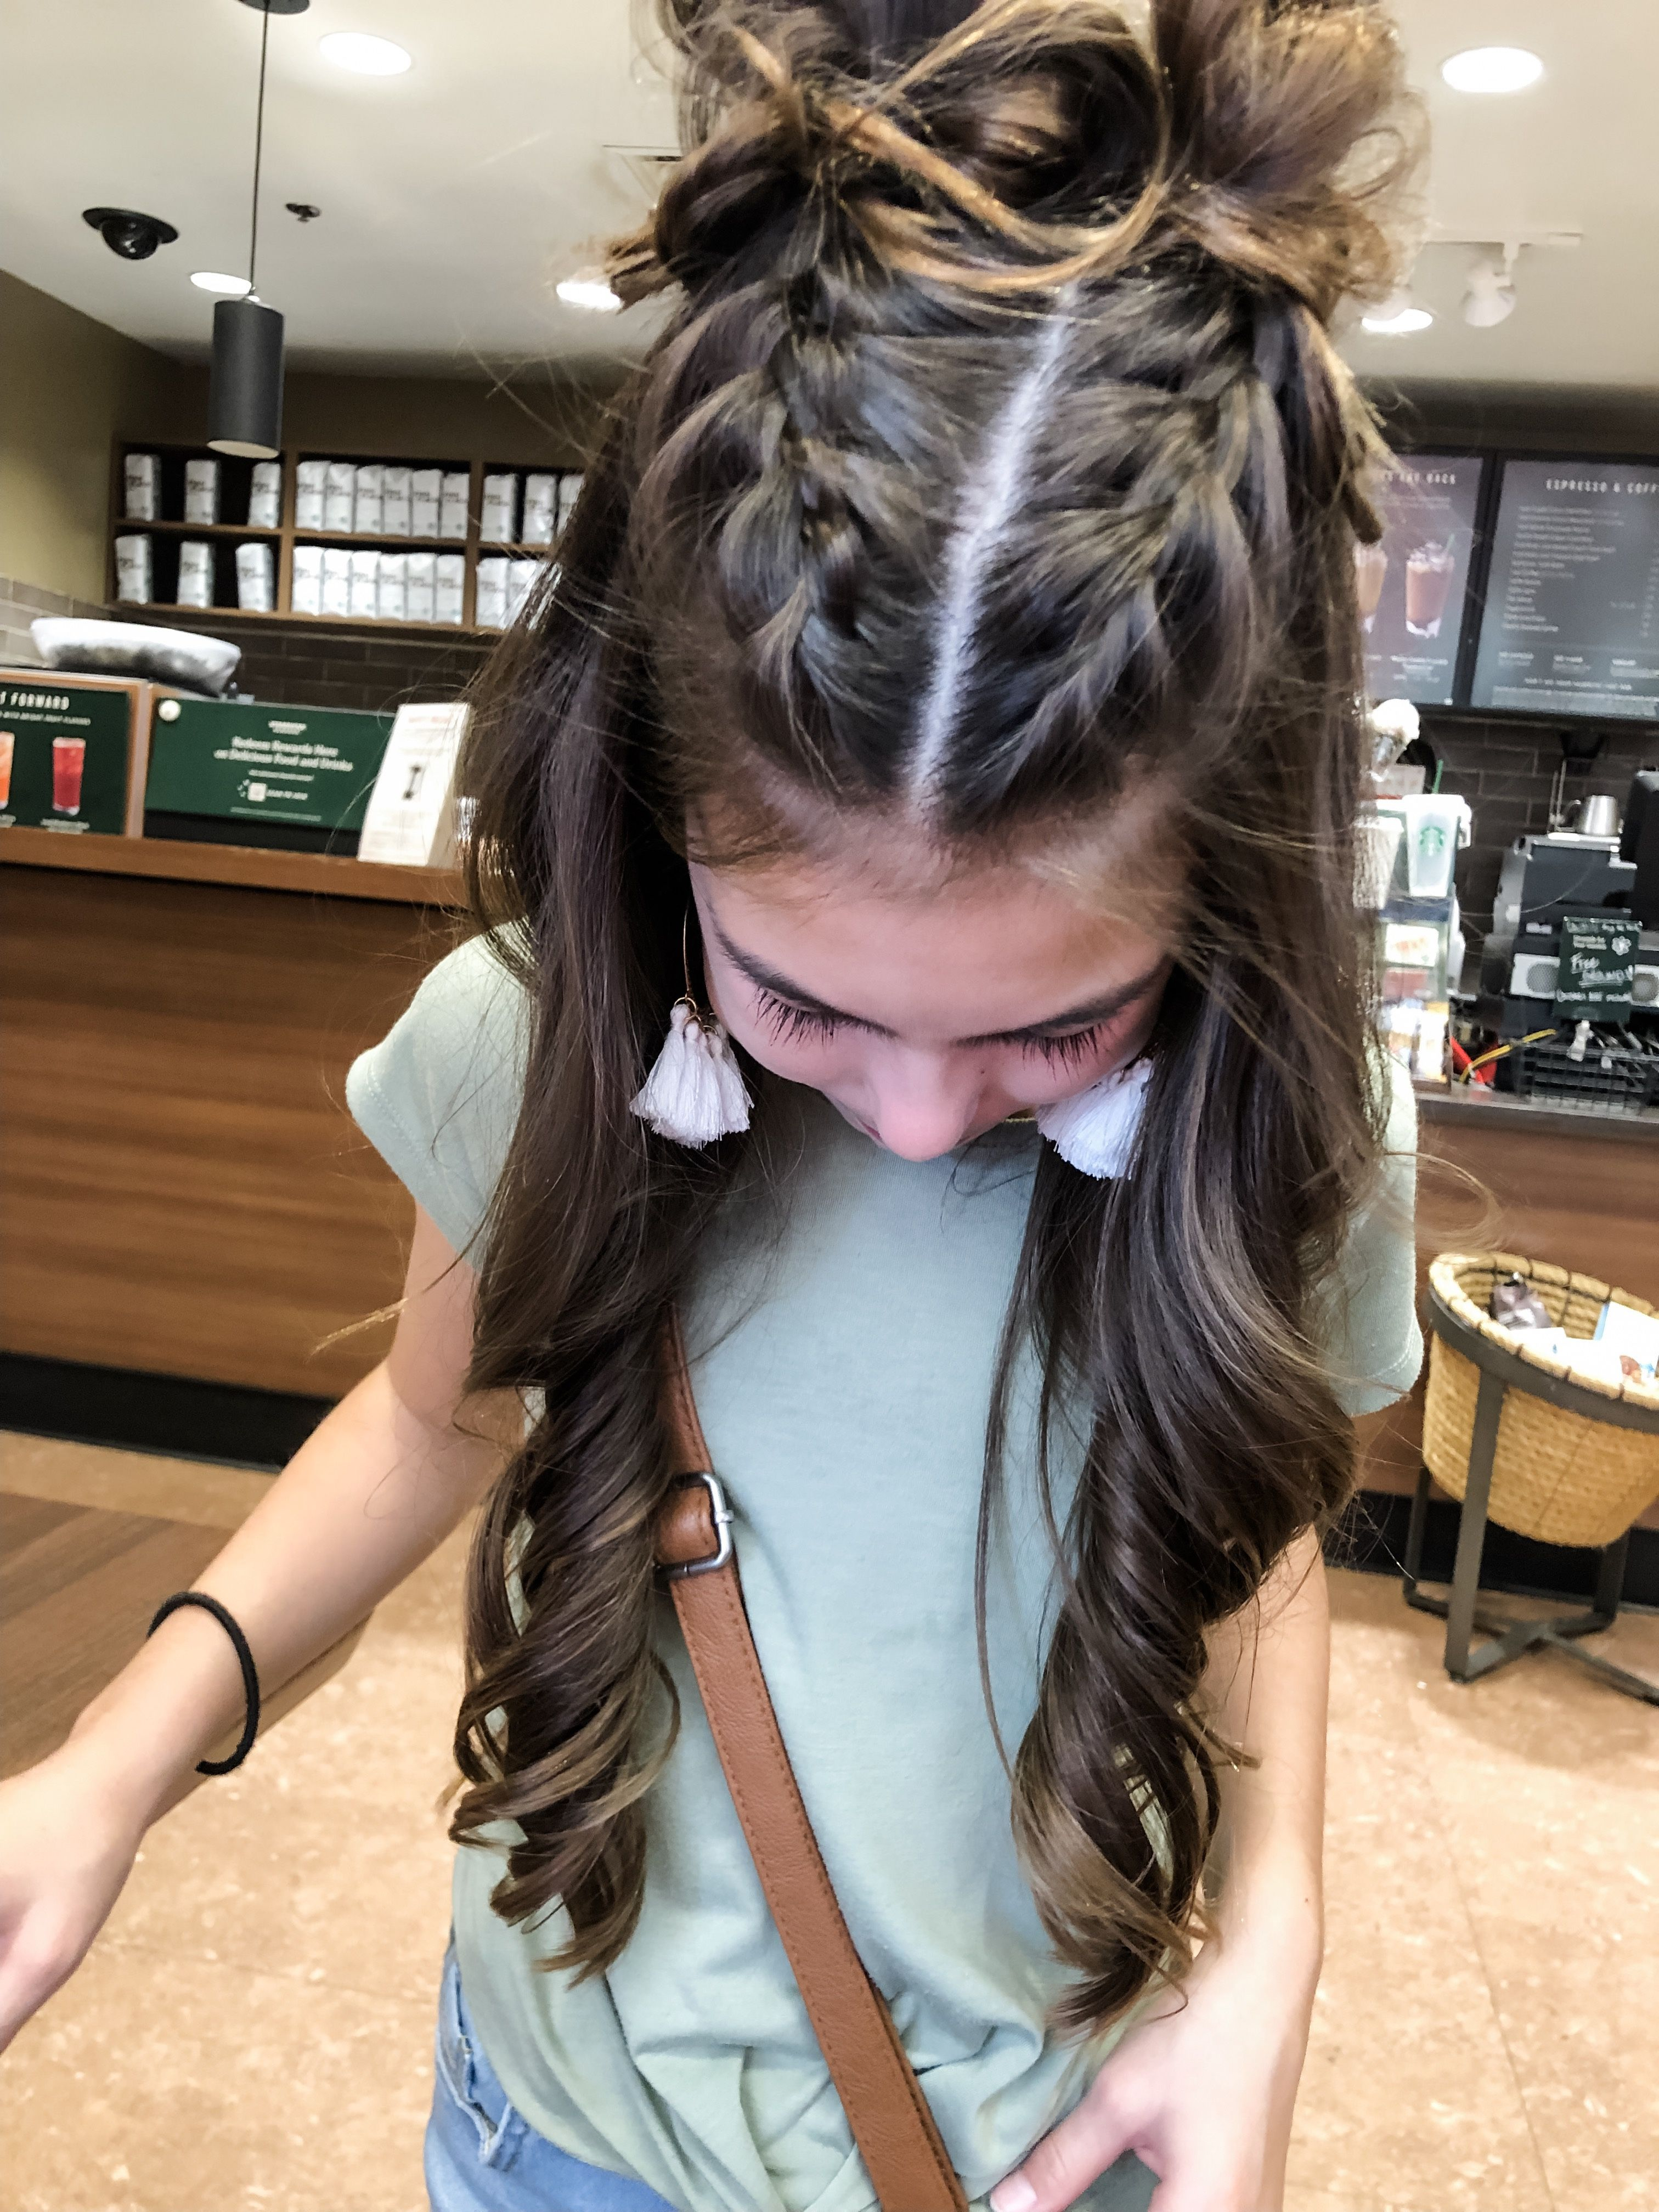 First day of school hairstyle. Split braids with curly hair. #girlhair